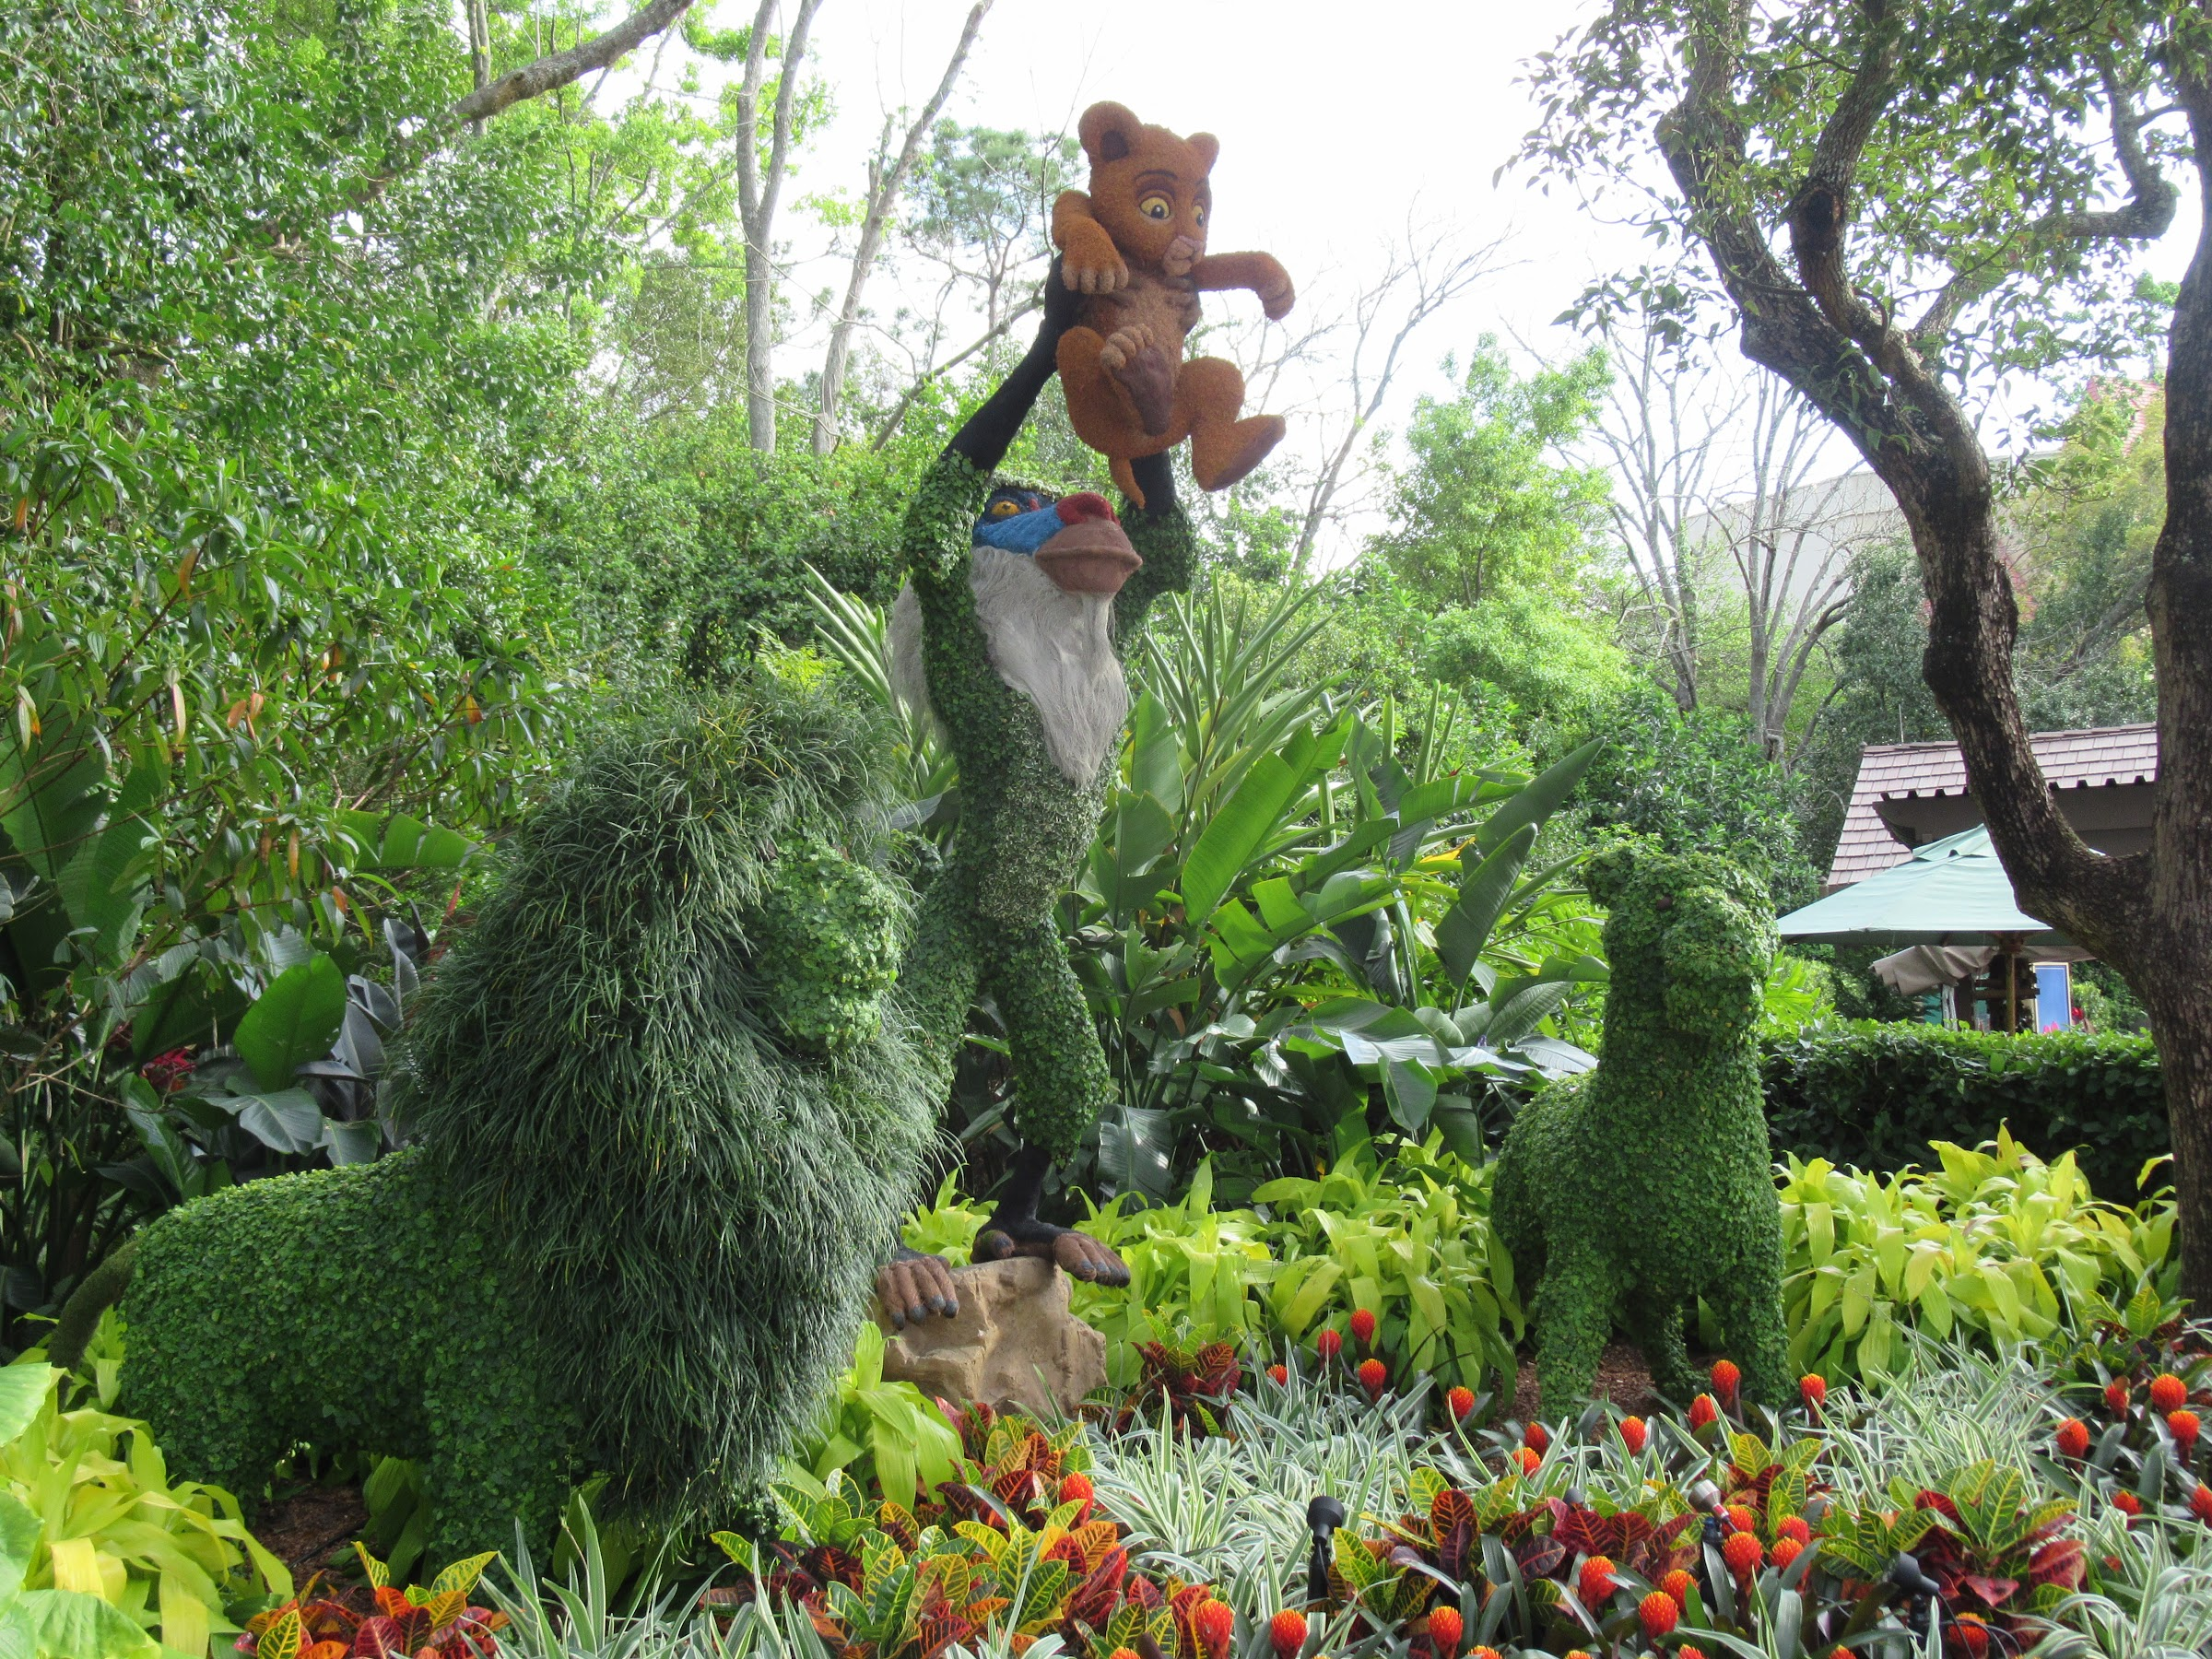 The Lion King Topiary at Epcot's Flower and Garden Festival